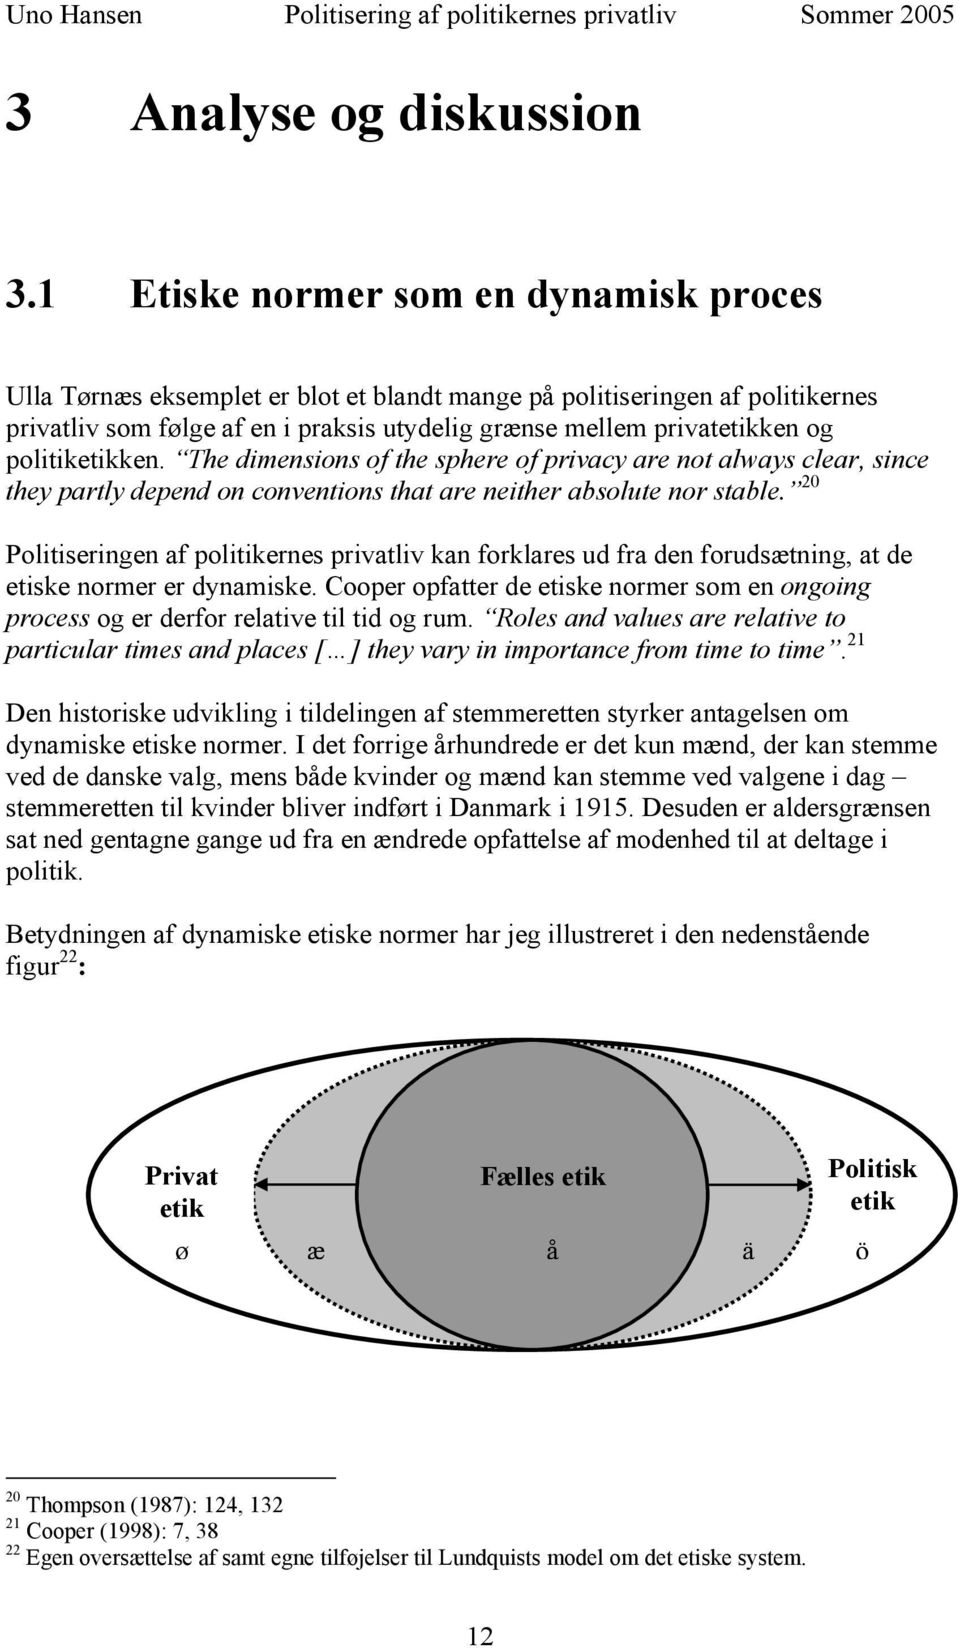 politiketikken. The dimensions of the sphere of privacy are not always clear, since they partly depend on conventions that are neither absolute nor stable.